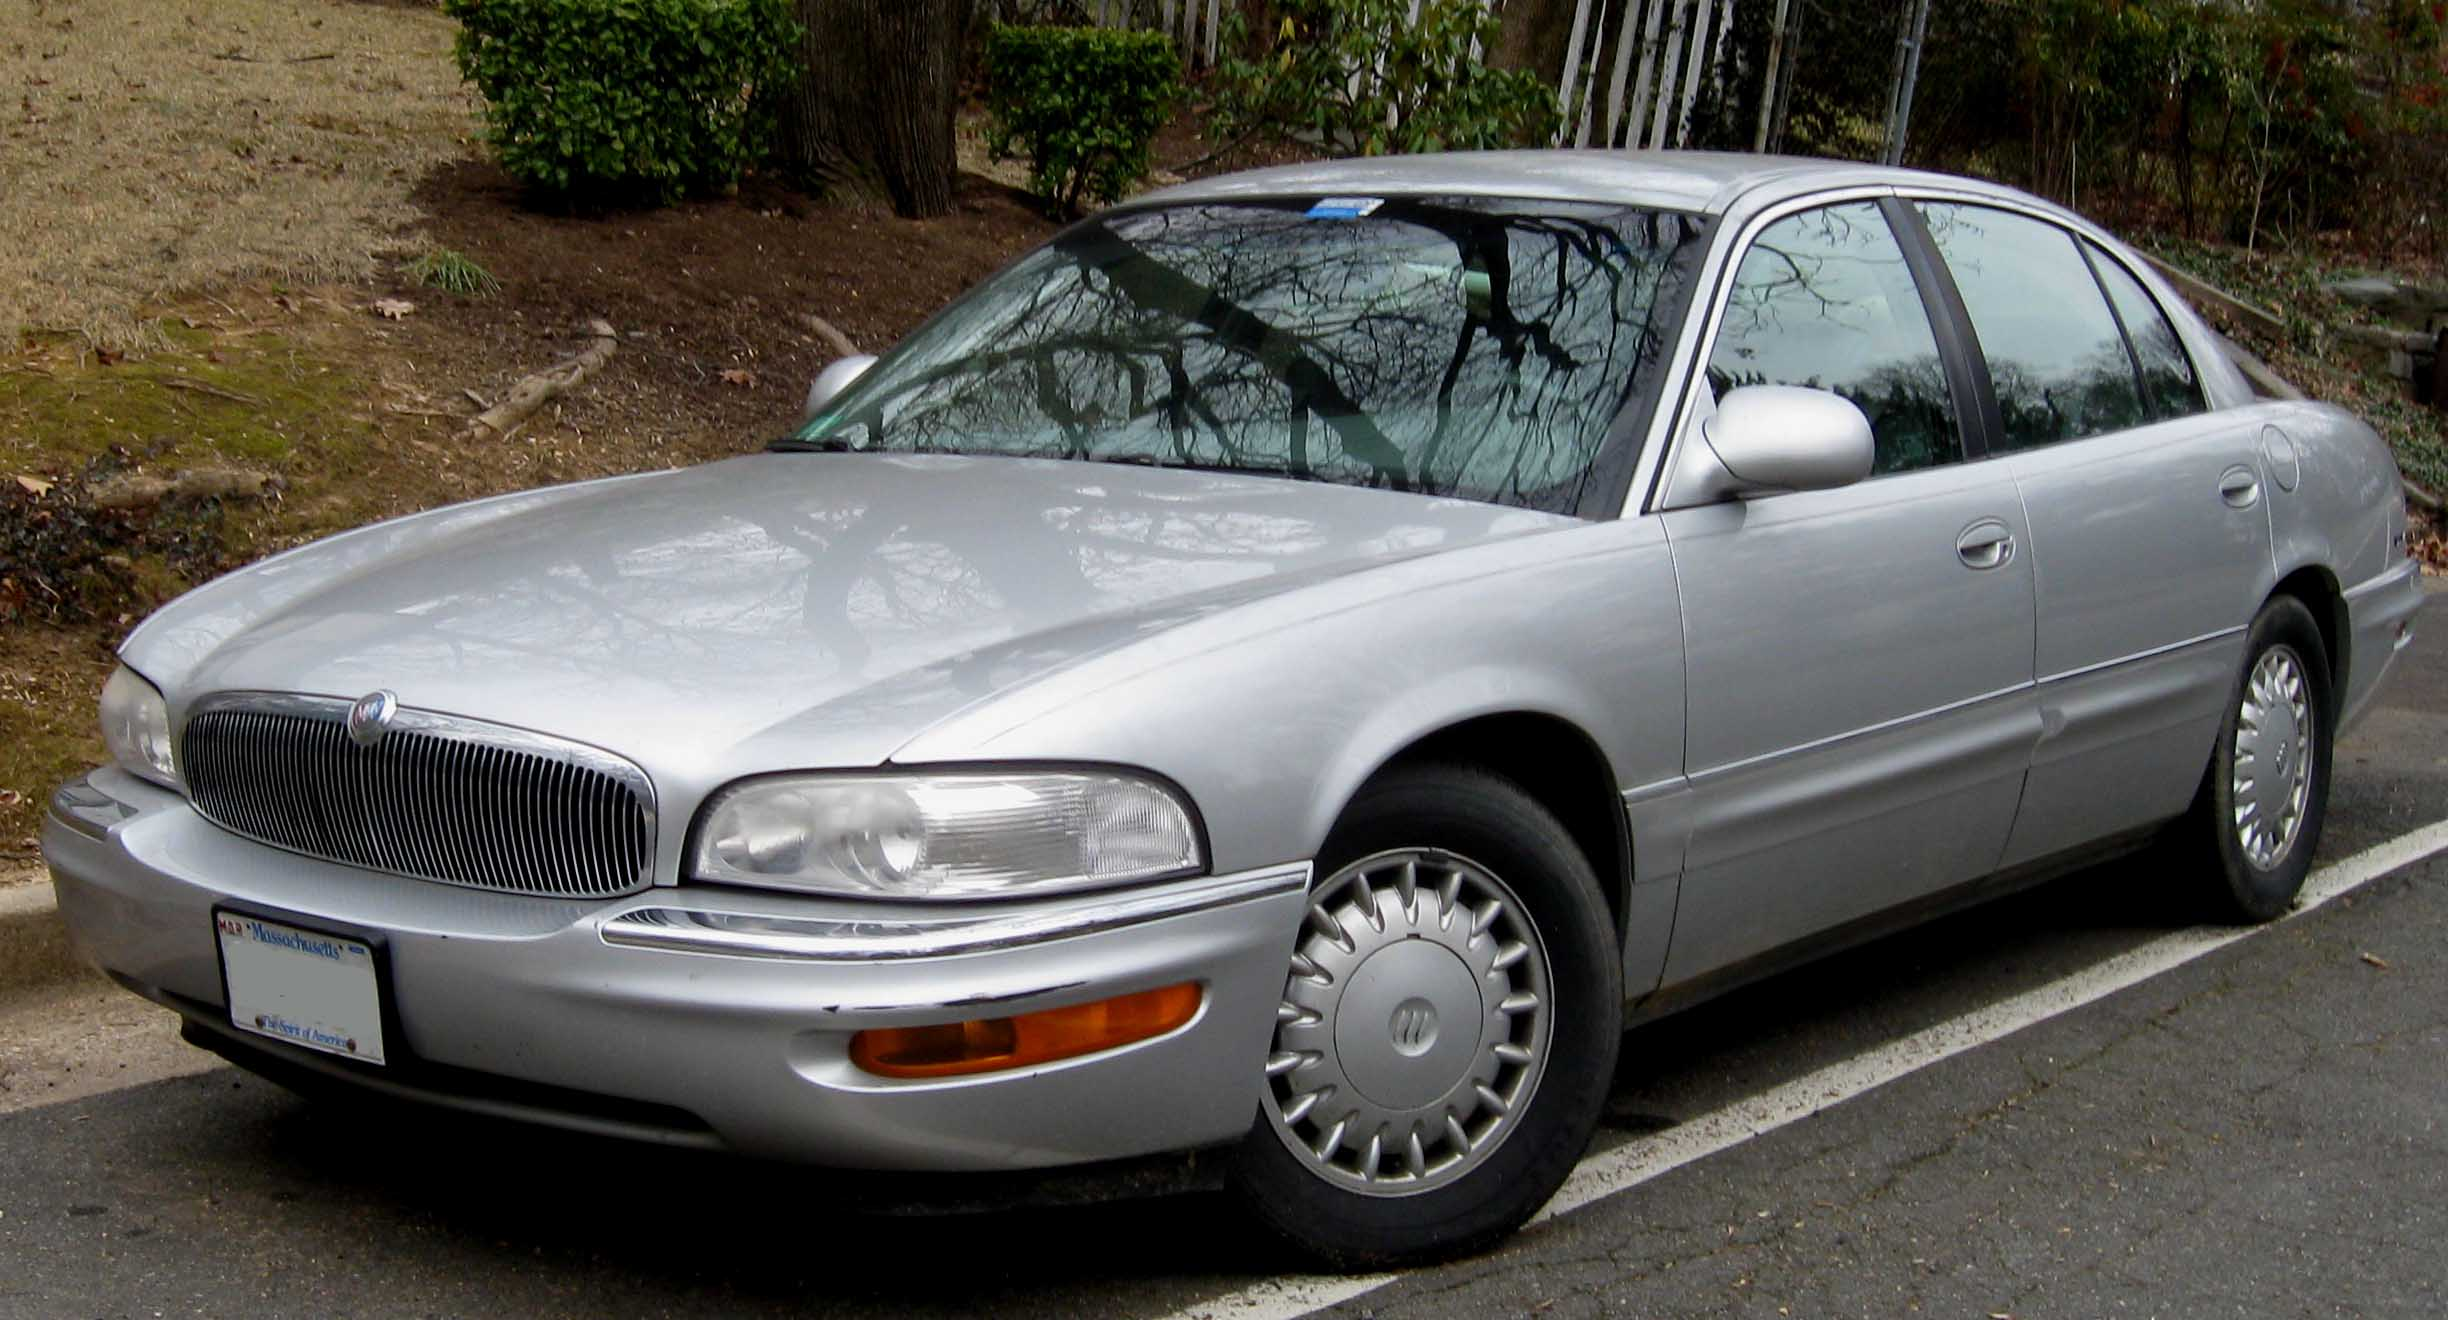 2001 Buick Park Avenue - Information And Photos